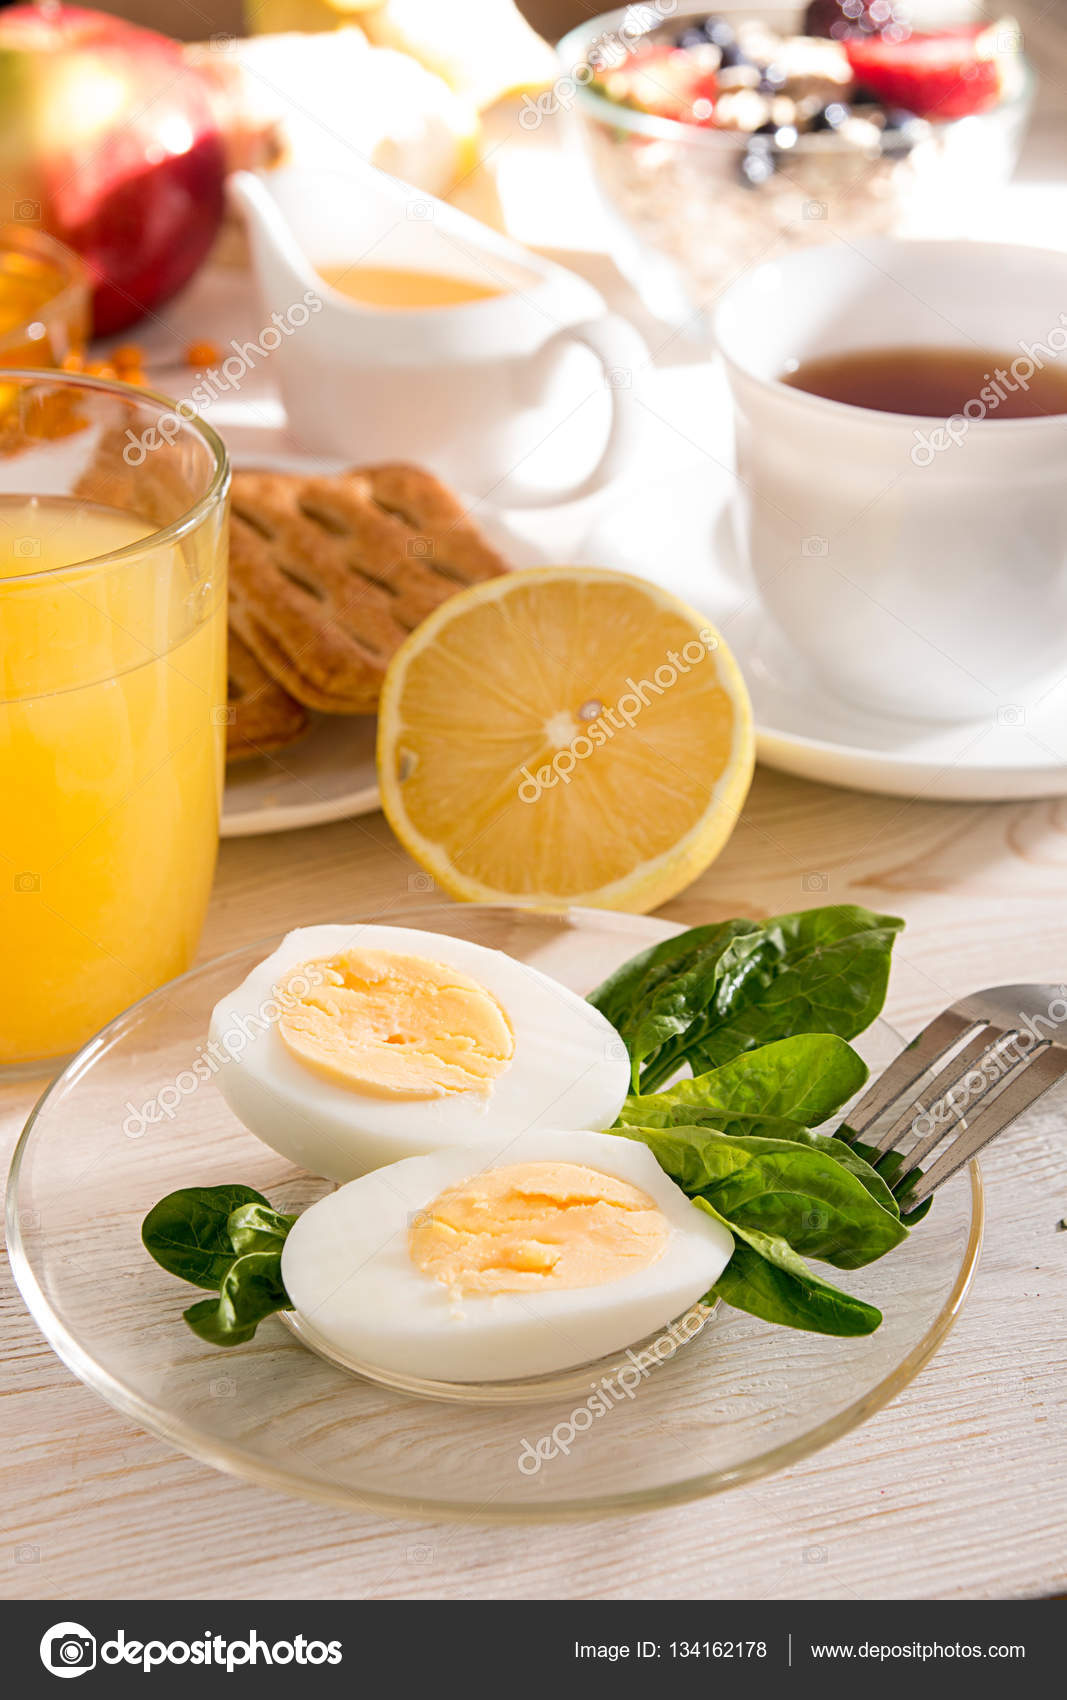 Healthy Breakfast Boiled Eggs With Spinach Cup Of Tea Orange Juice Cookies On White Table Organic Natural Food Concept Top View